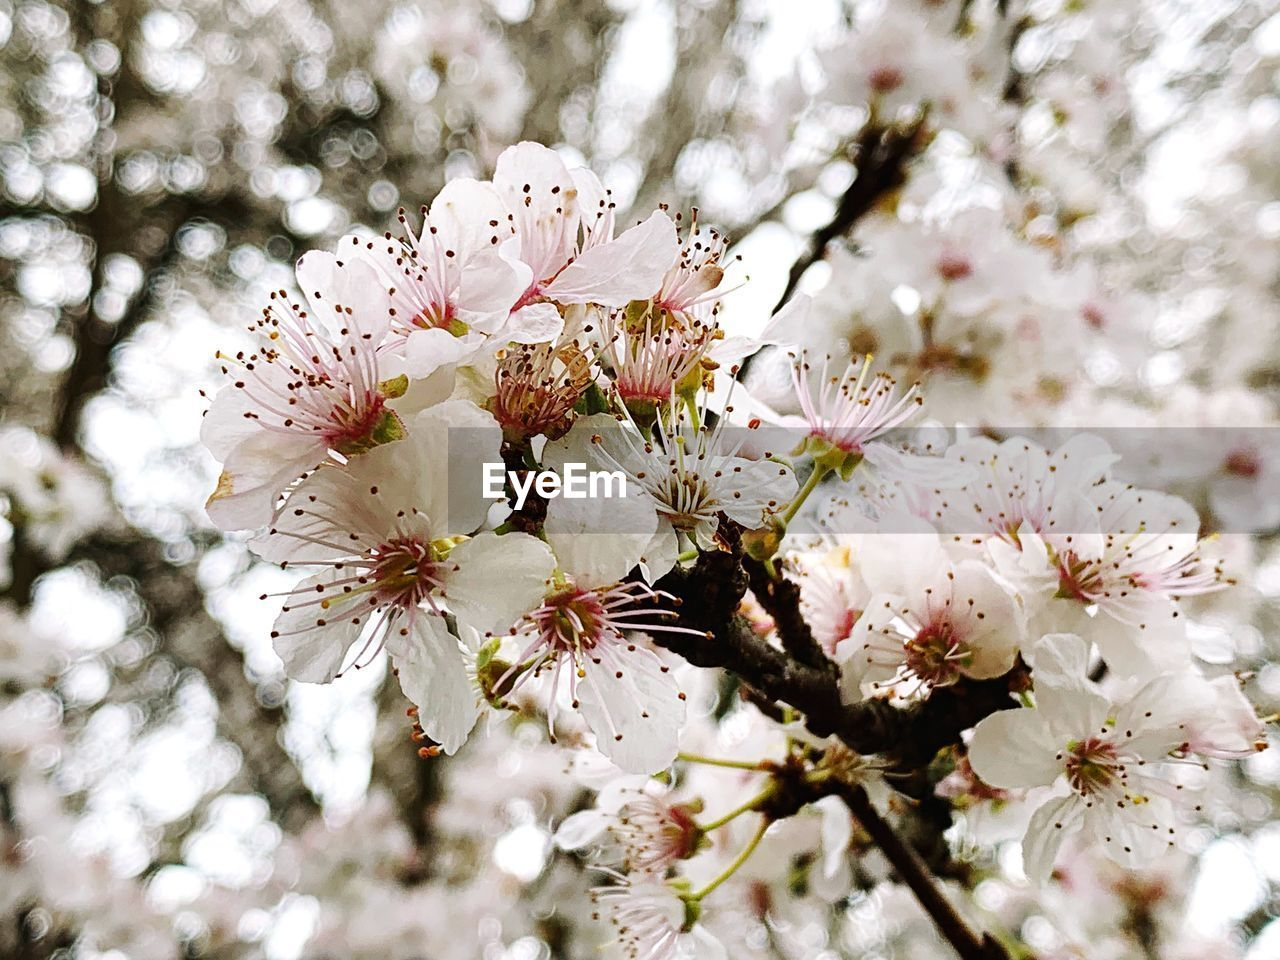 flowering plant, flower, plant, fragility, vulnerability, freshness, growth, beauty in nature, tree, blossom, springtime, cherry blossom, branch, petal, pollen, close-up, flower head, nature, inflorescence, day, no people, cherry tree, outdoors, bunch of flowers, spring